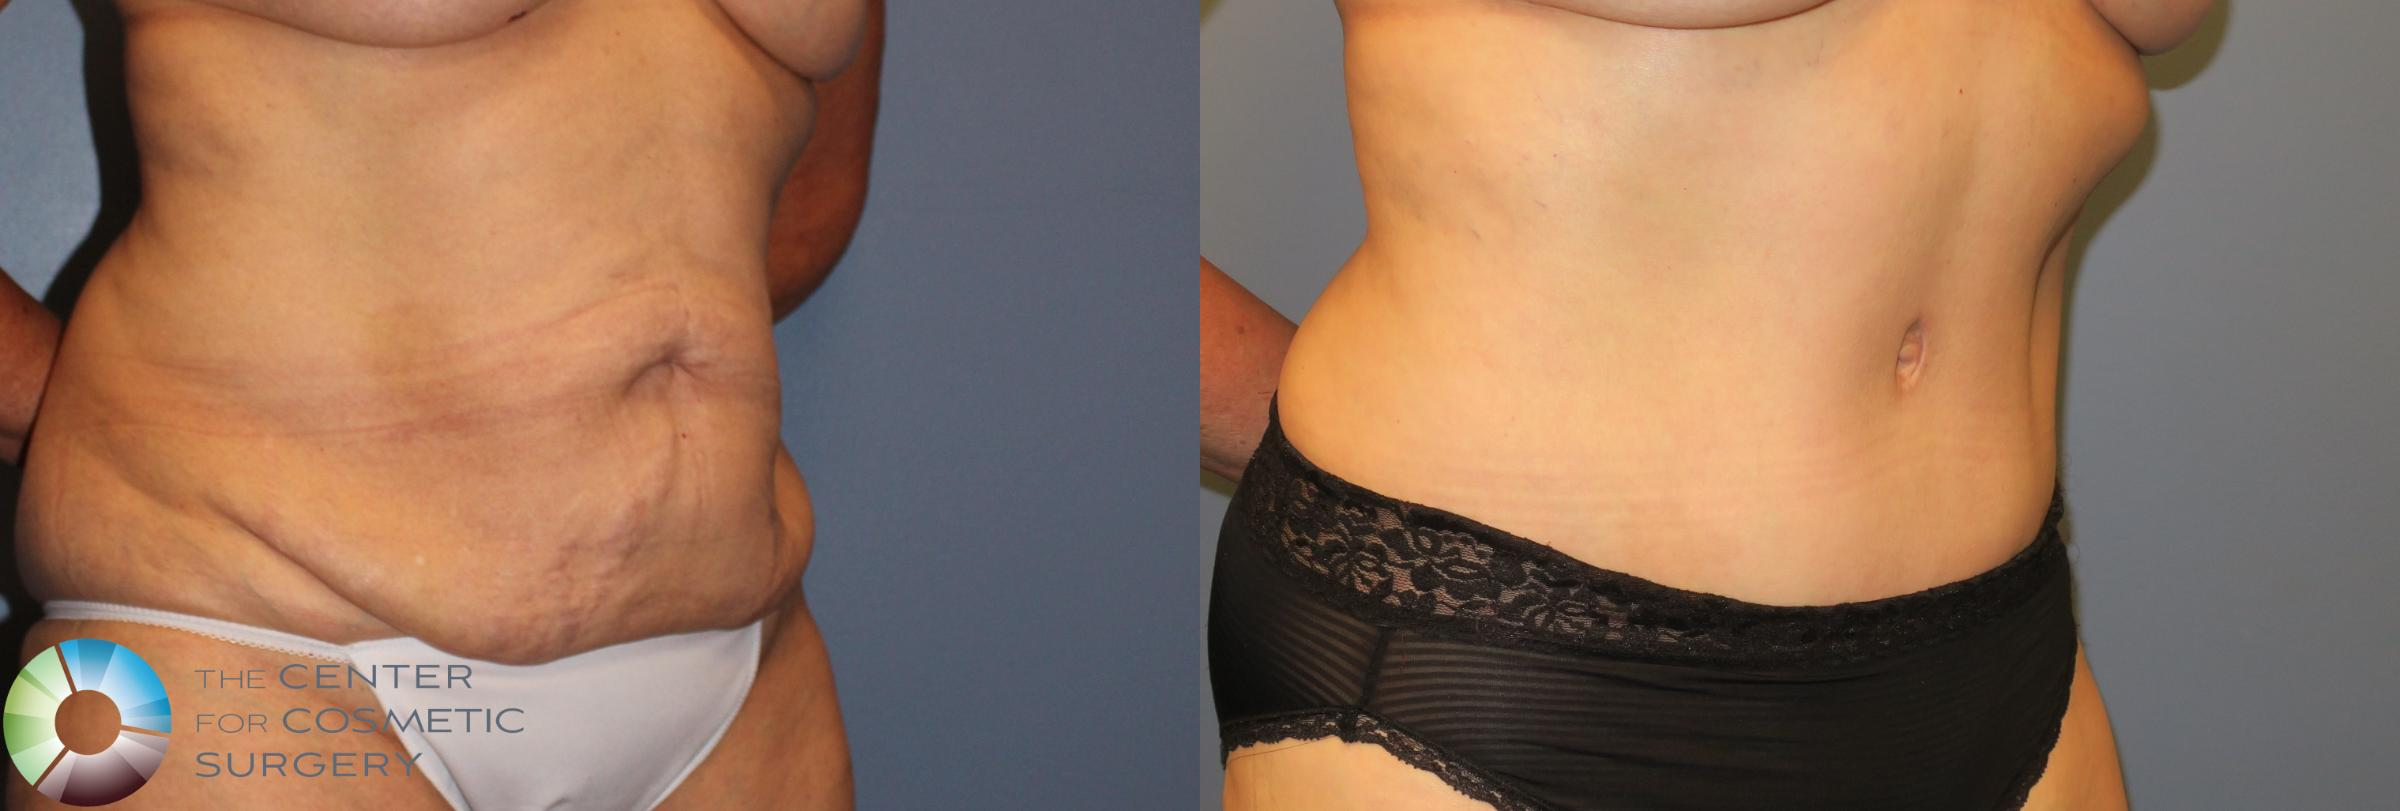 Tummy Tuck Case 962 Before & After View #2 | Golden, CO | The Center for Cosmetic Surgery